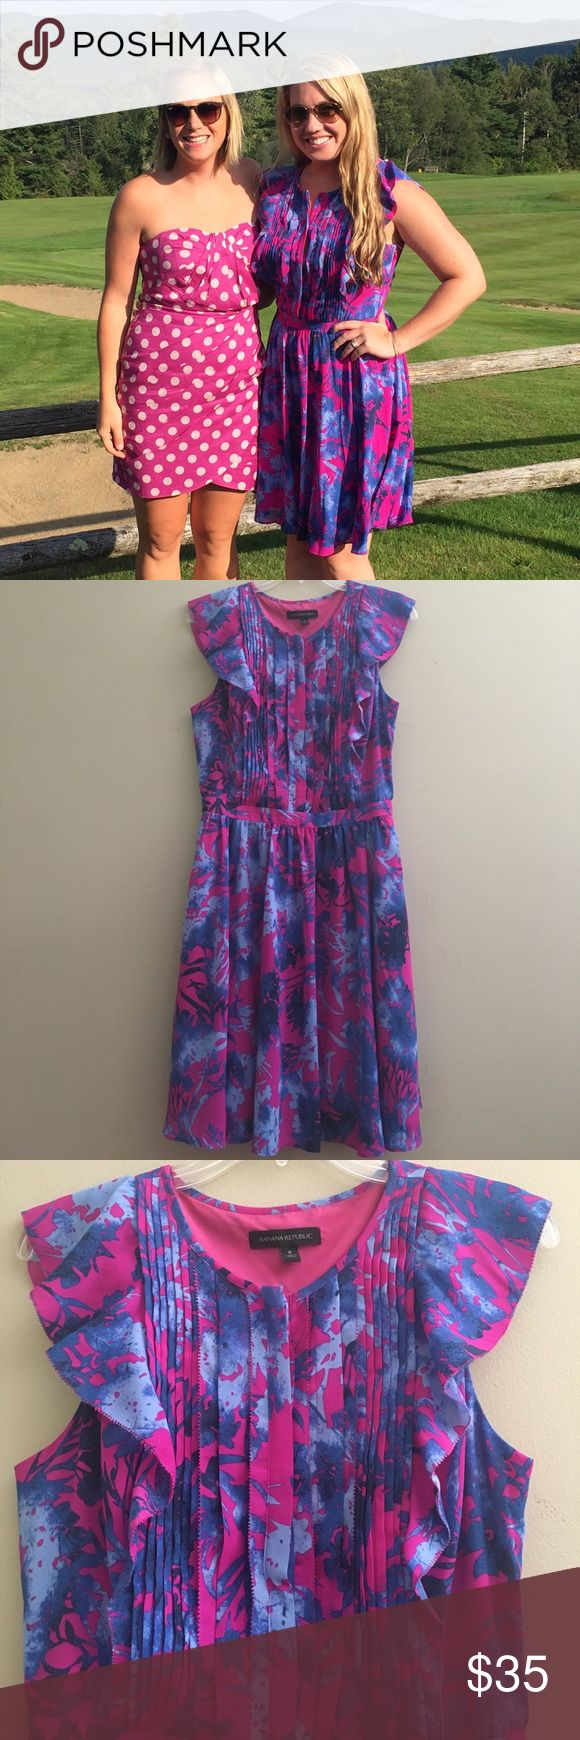 Banana Republic dress with pockets!!! Pink and blue dress with pin tuck pleating on chest with ruffles down side. 4 buttons down front of chest. Has pockets!! Worn once to a wedding. Banana Republic Dresses